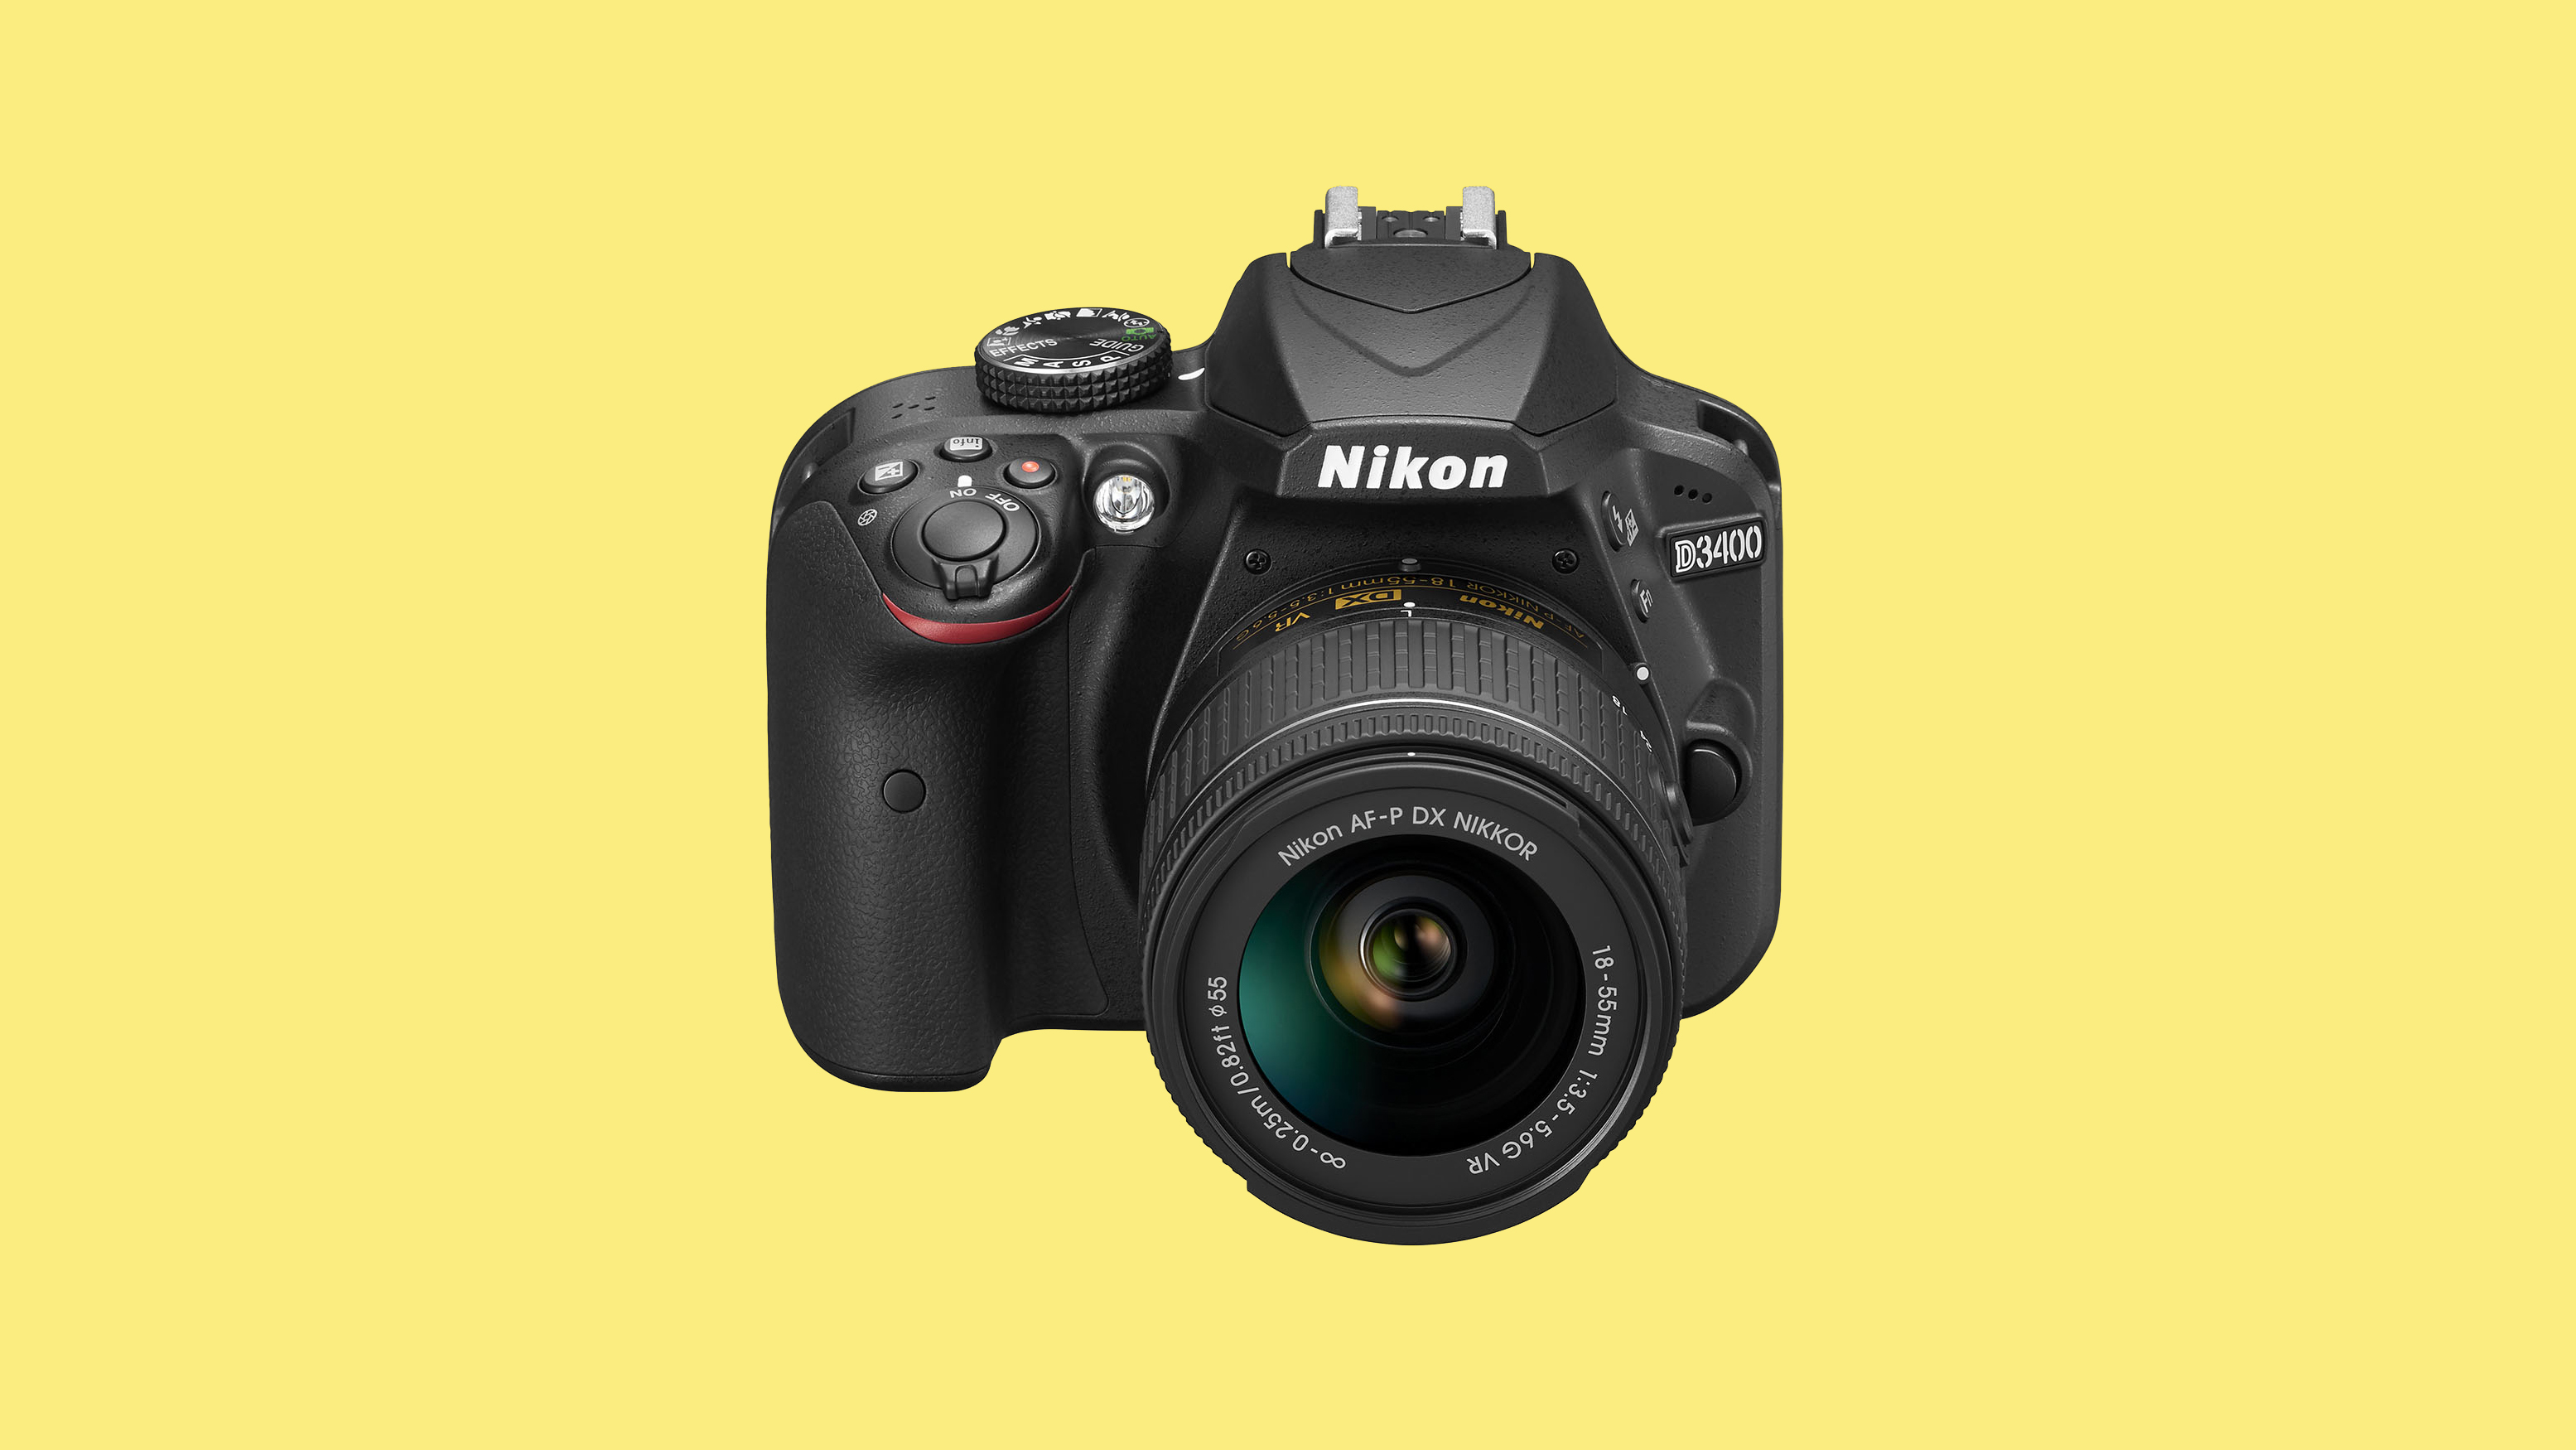 Best entry-level DSLR 2016: What to look for and which to